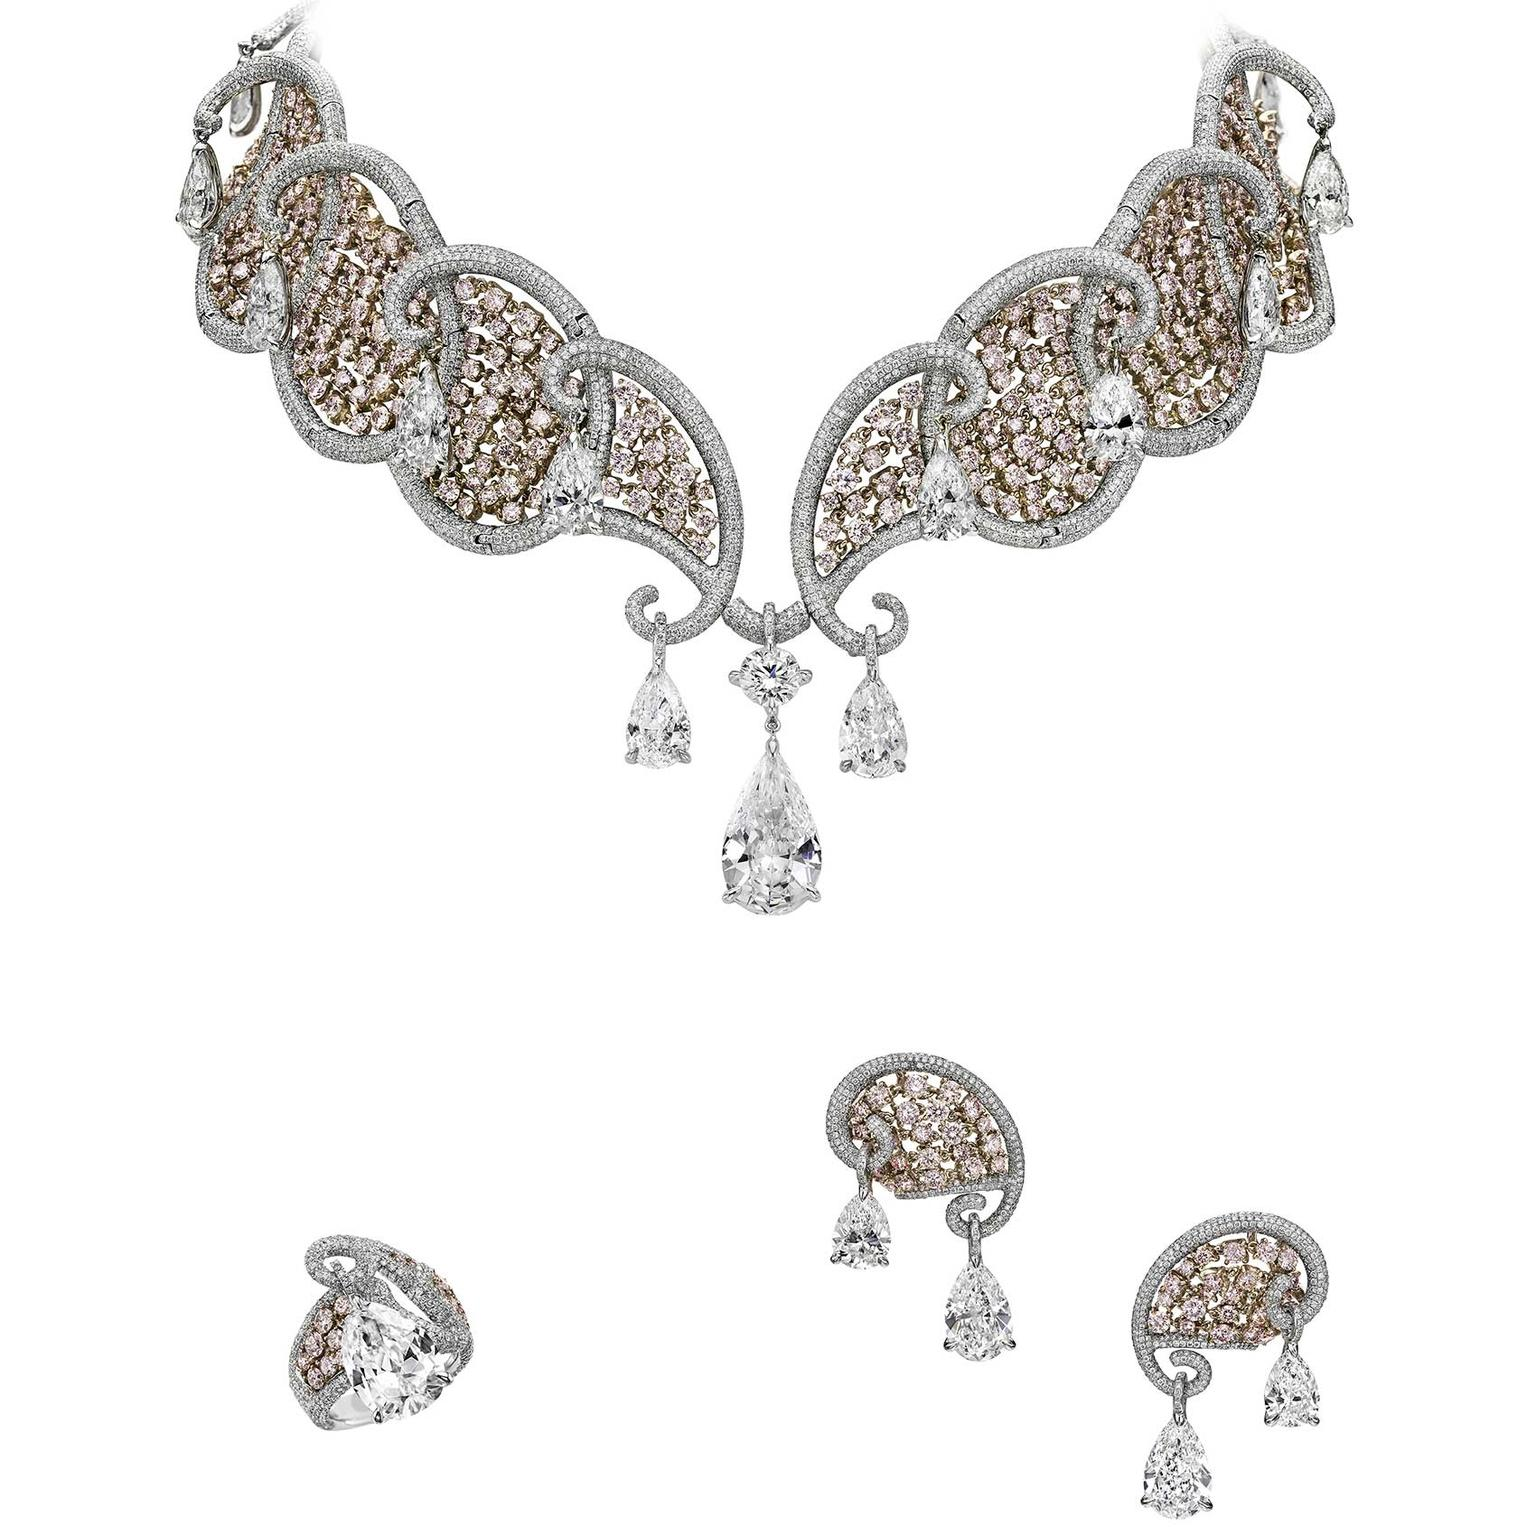 Boghossian pink and white diamond necklace, ring and earrings from the Ballet Oriental collection